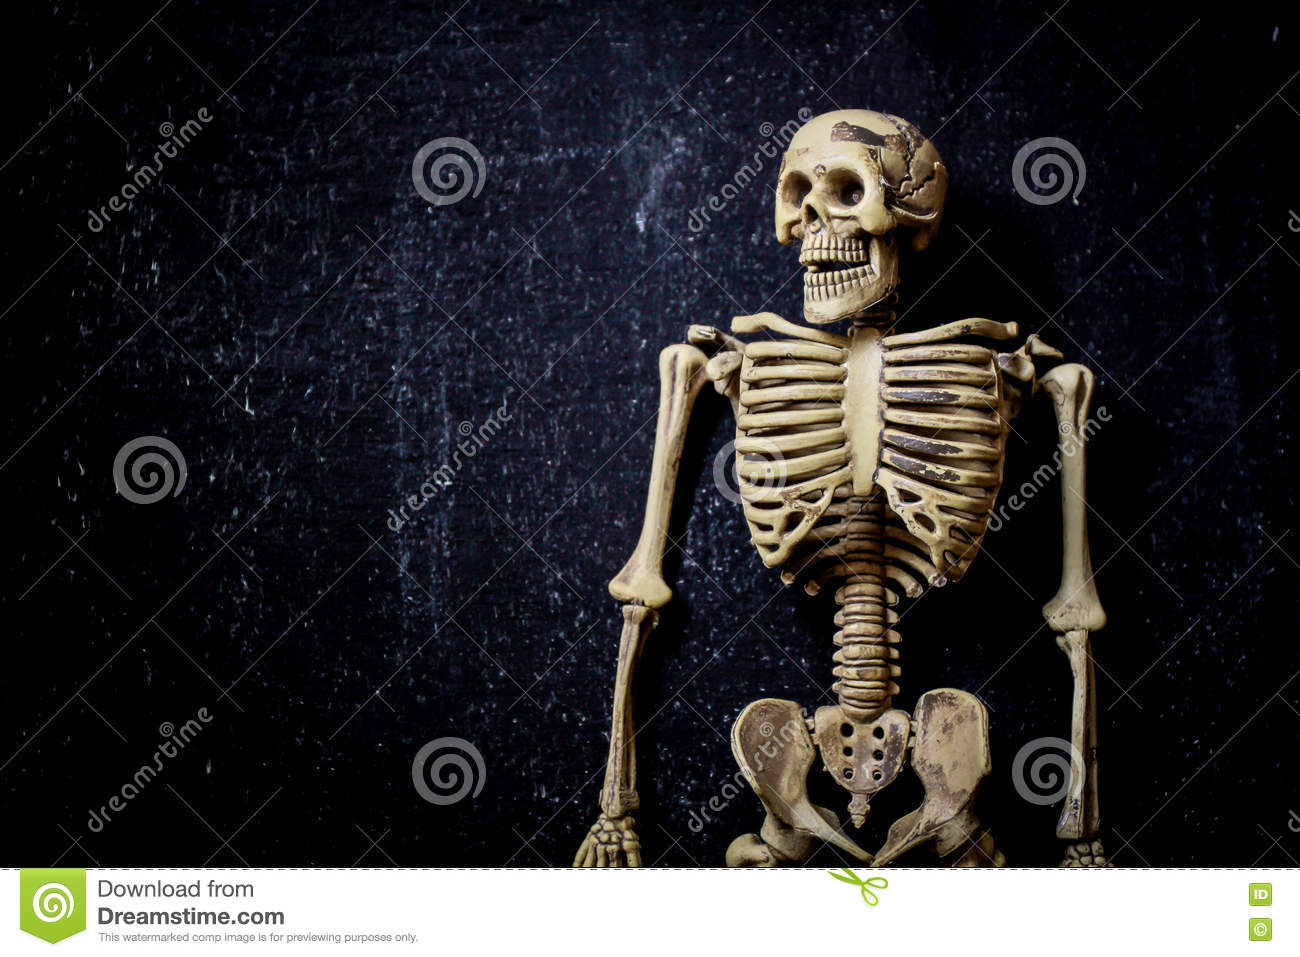 Human Skeleton Stock Image Image Of Abstract Frighten 78822581